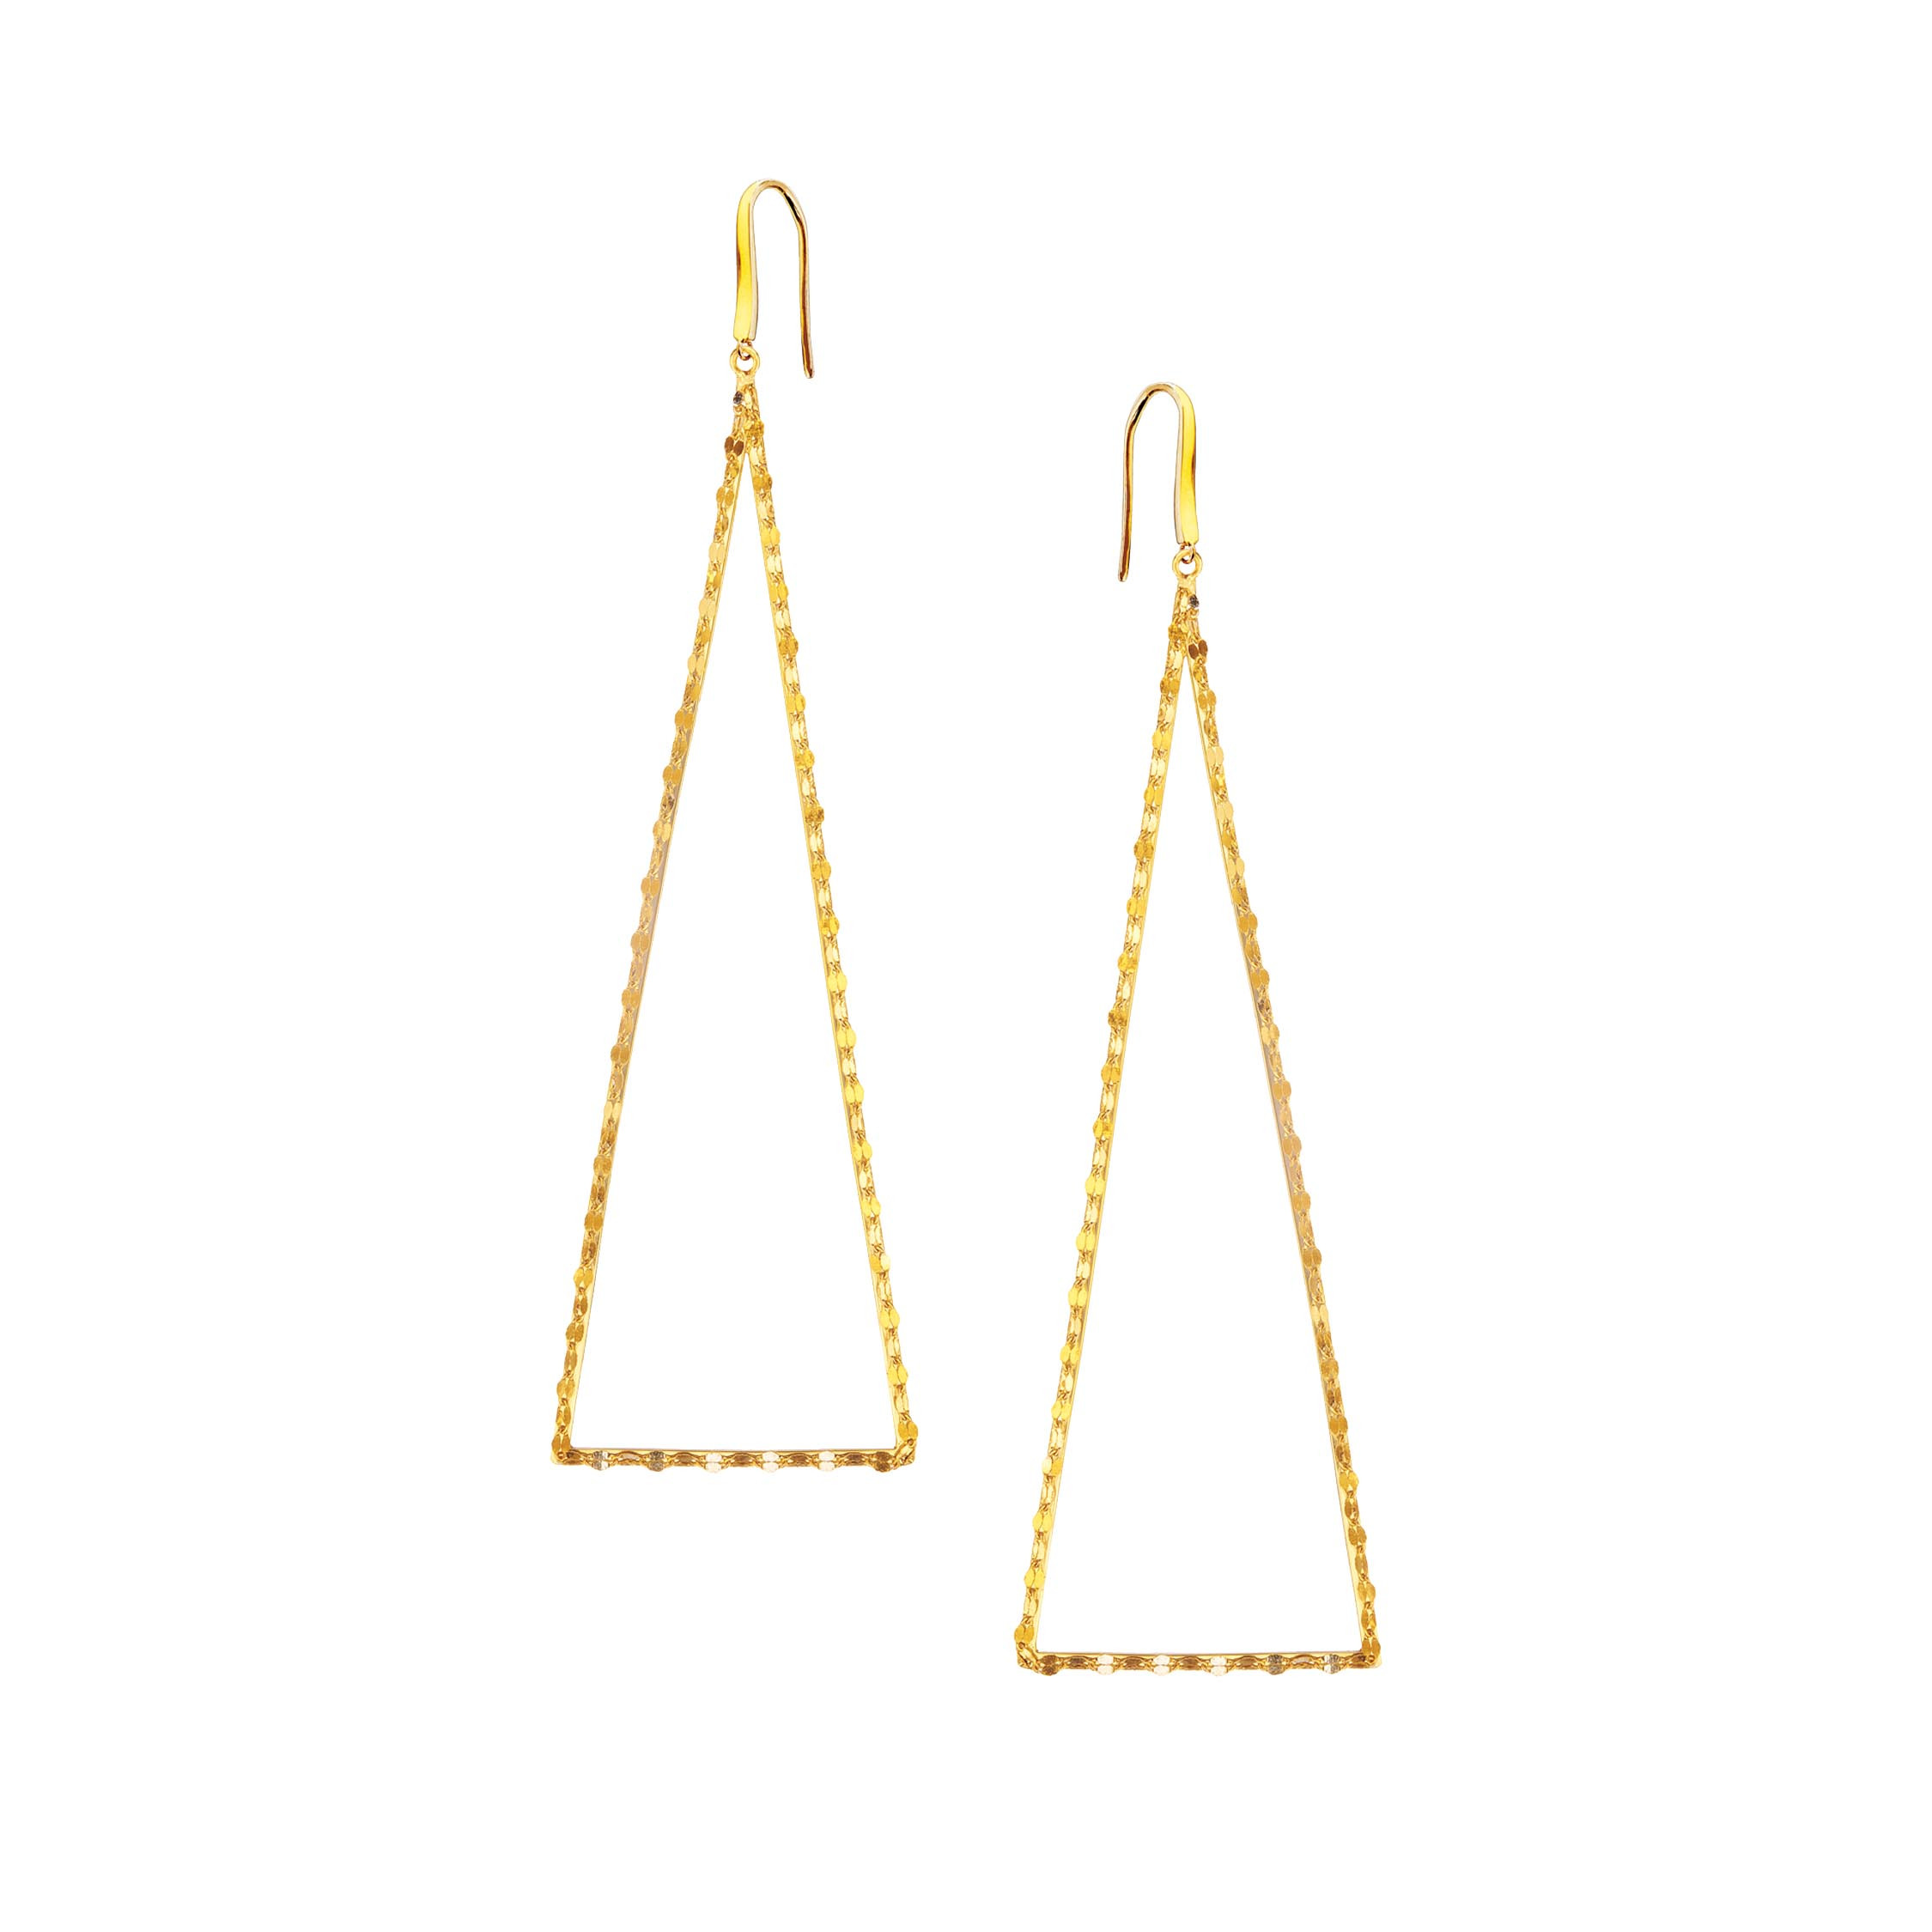 New Lana Small Triangle Silhouette Earrings